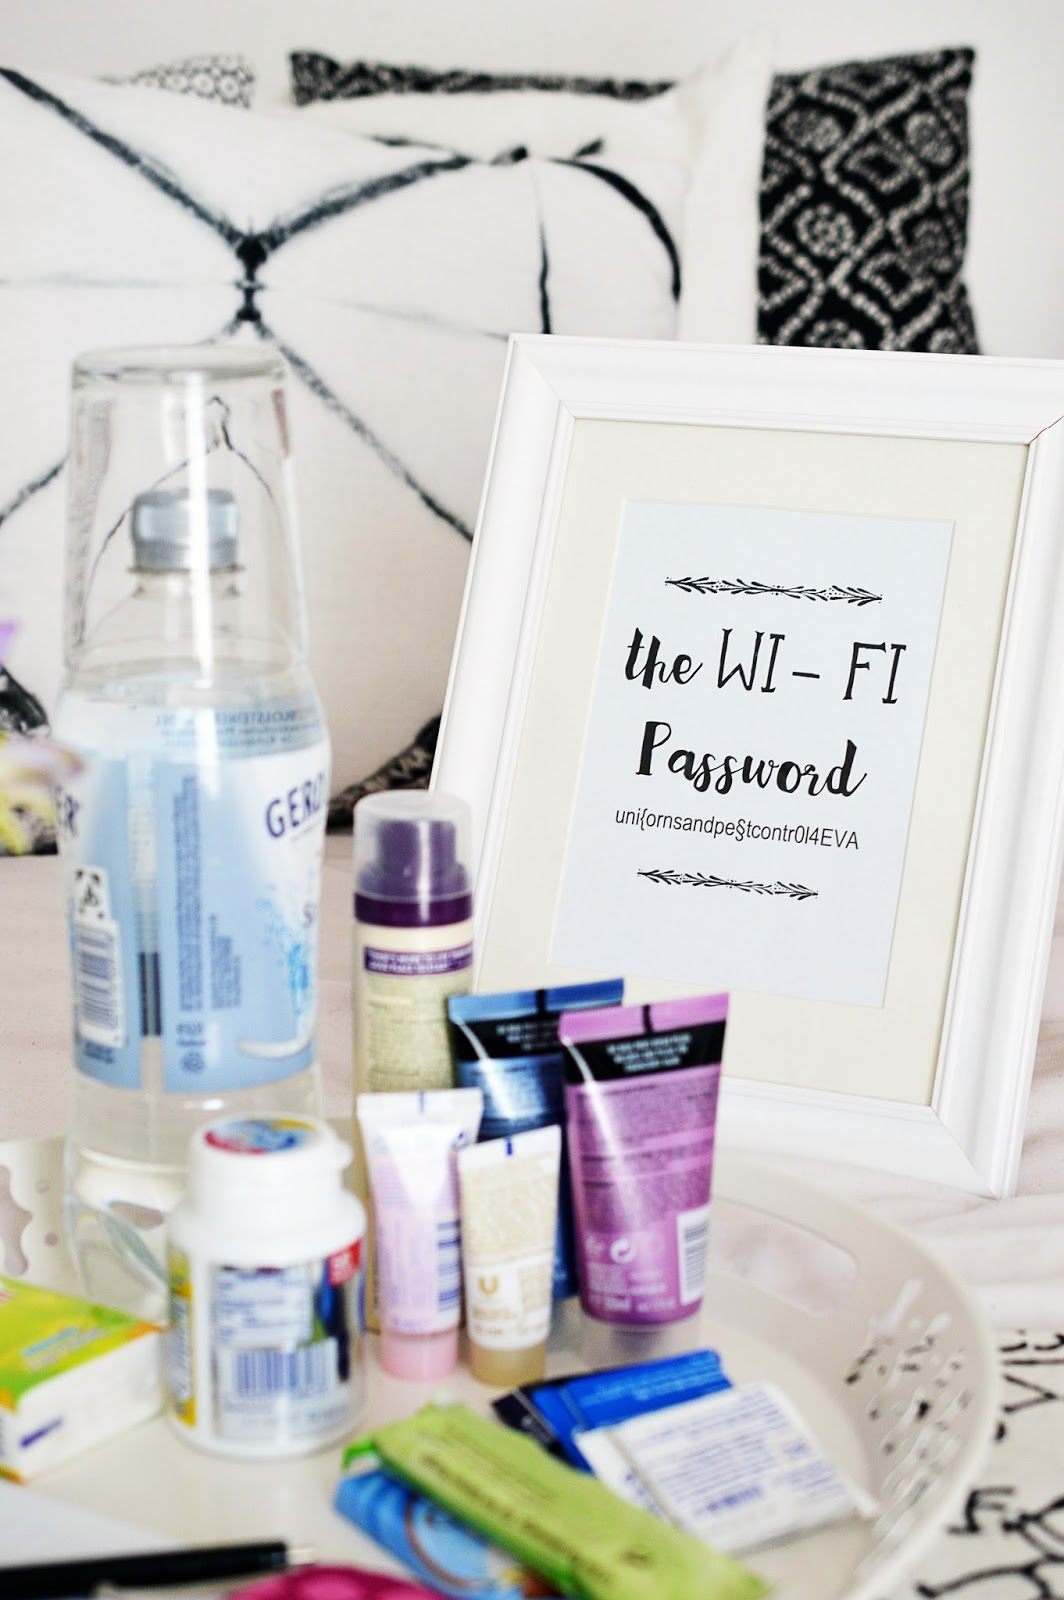 DIY Guest Tray with WiFi Password Display | Motte's Blog